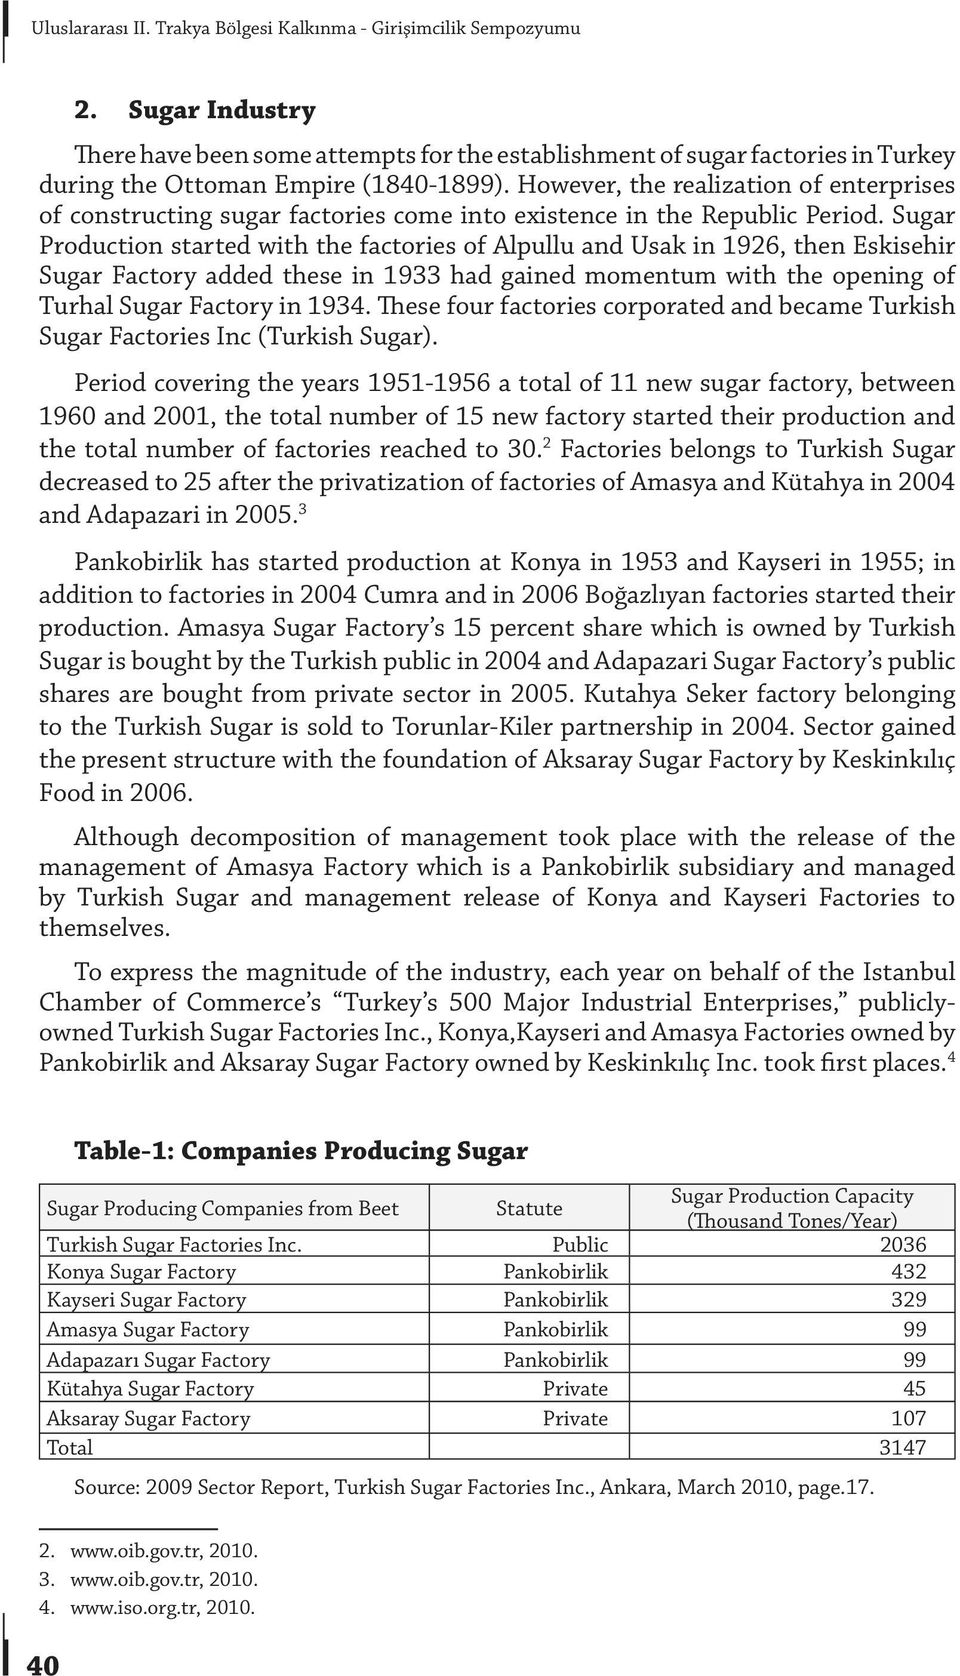 However, the realization of enterprises of constructing sugar factories come into existence in the Republic Period.